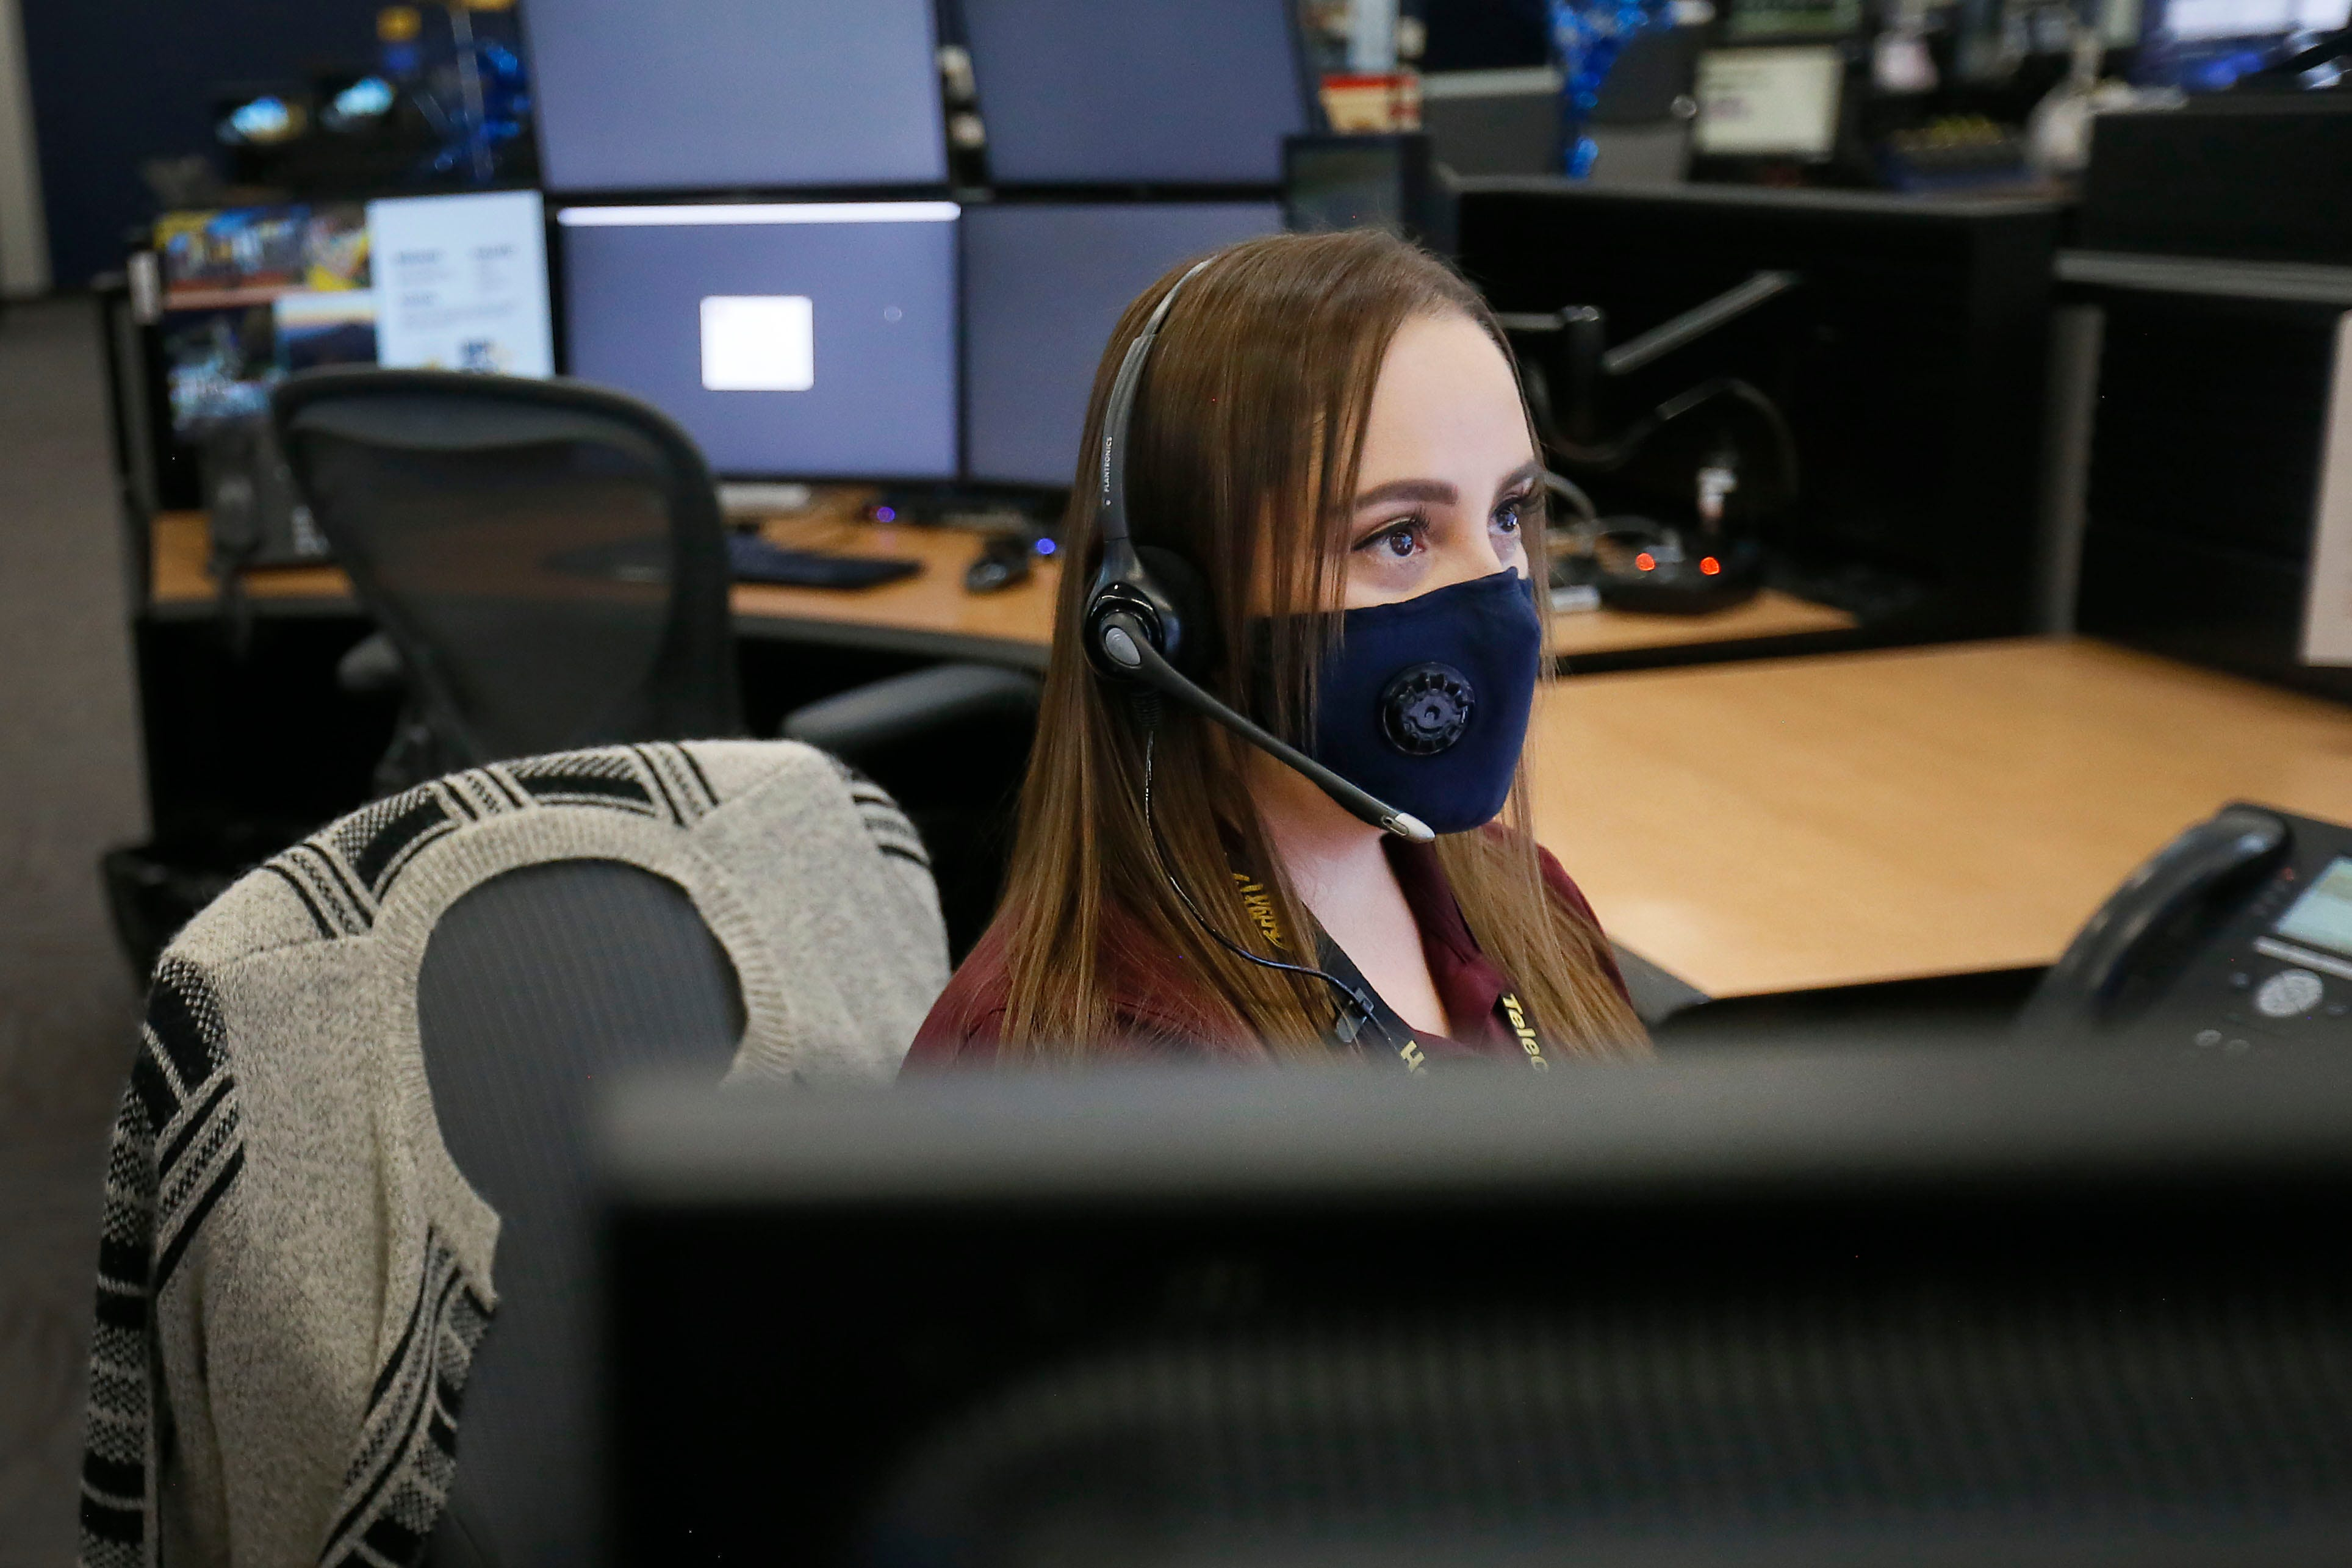 Public safety telecommunicator Bernardette Falcon works Thursday, July 23, at the Regional Communications Center in Northeast El Paso. Falcon was one of the first public safety telecommunicators to take 911 calls from people at Walmart on Aug. 3, 2019.  A woman who stayed on the line with Falcon was able to give a description of the shooter.